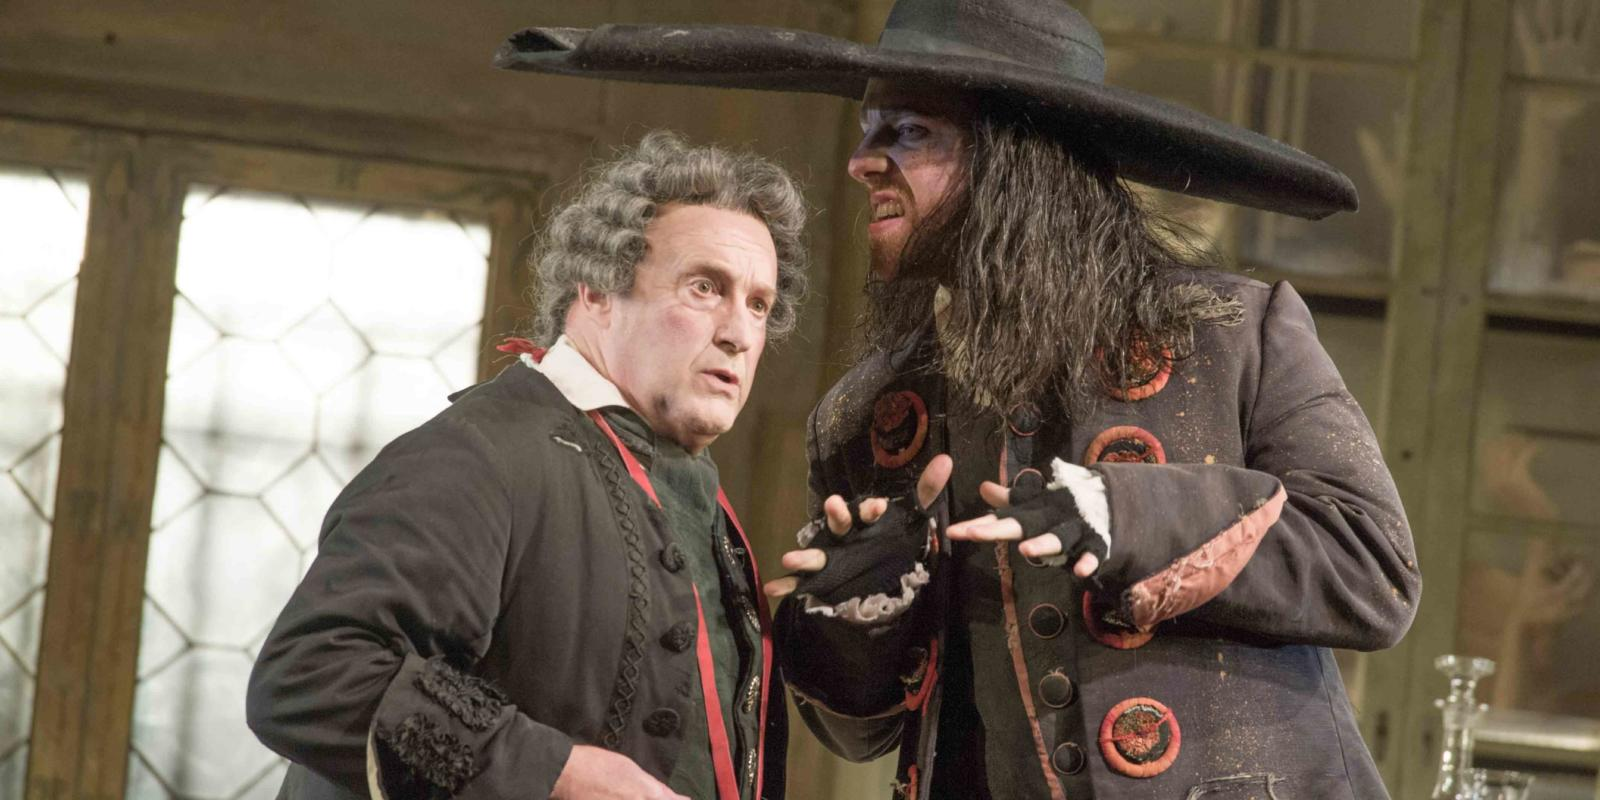 An image of Andrew Shore and Barnaby Rea in the 2015/16 production of Jonathan Miller's production of Barber of Seville